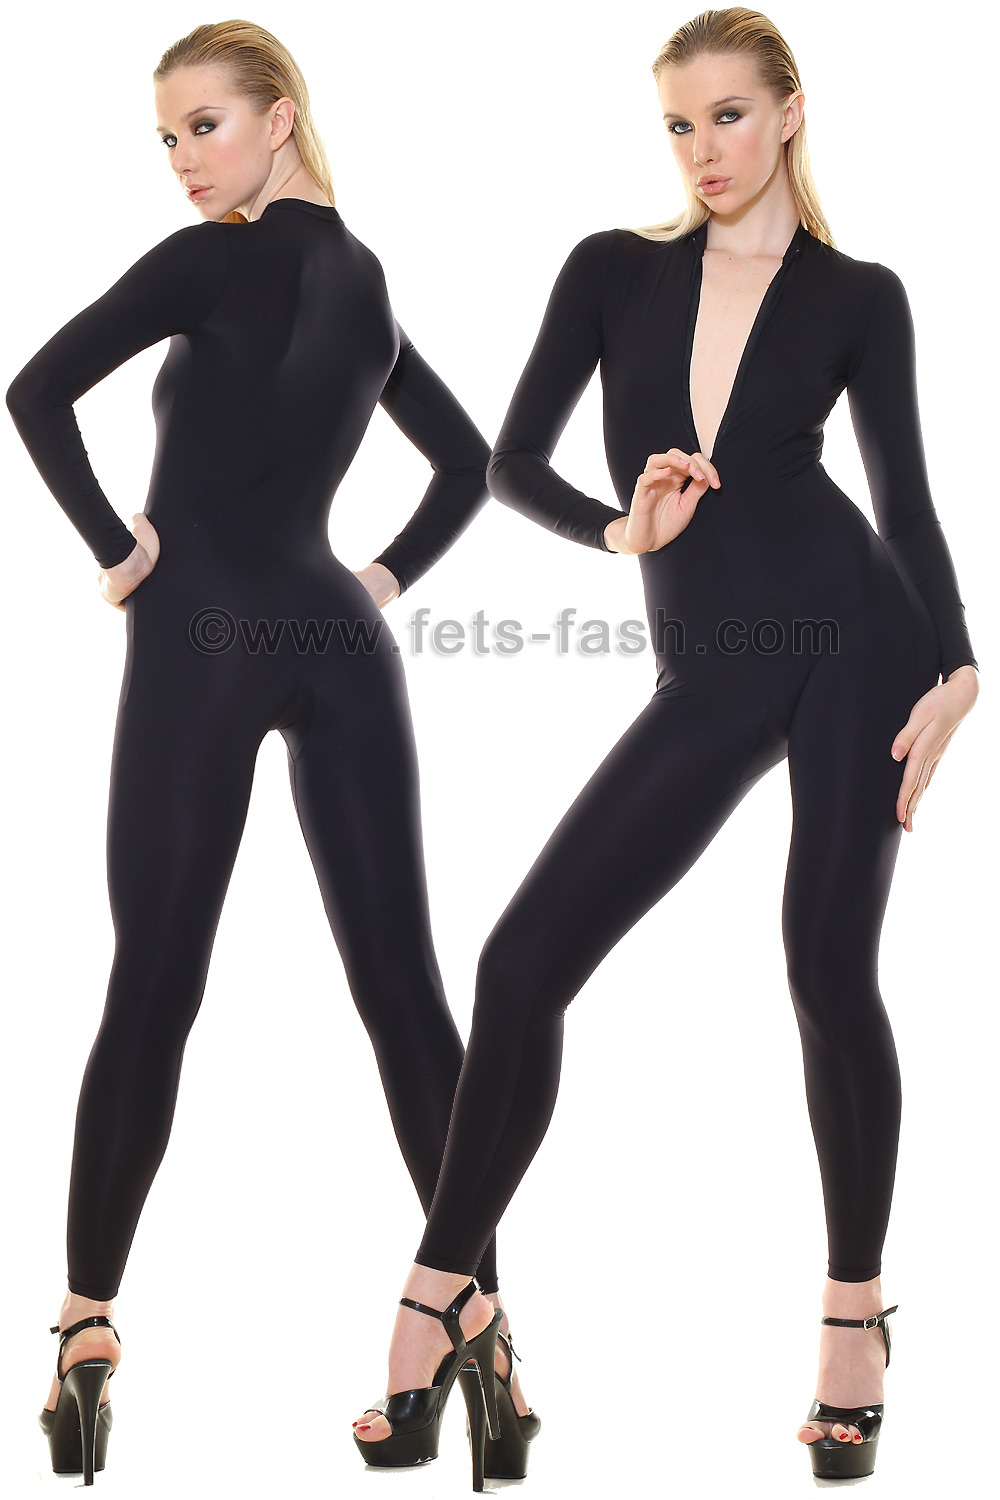 Catsuit Catsuits for